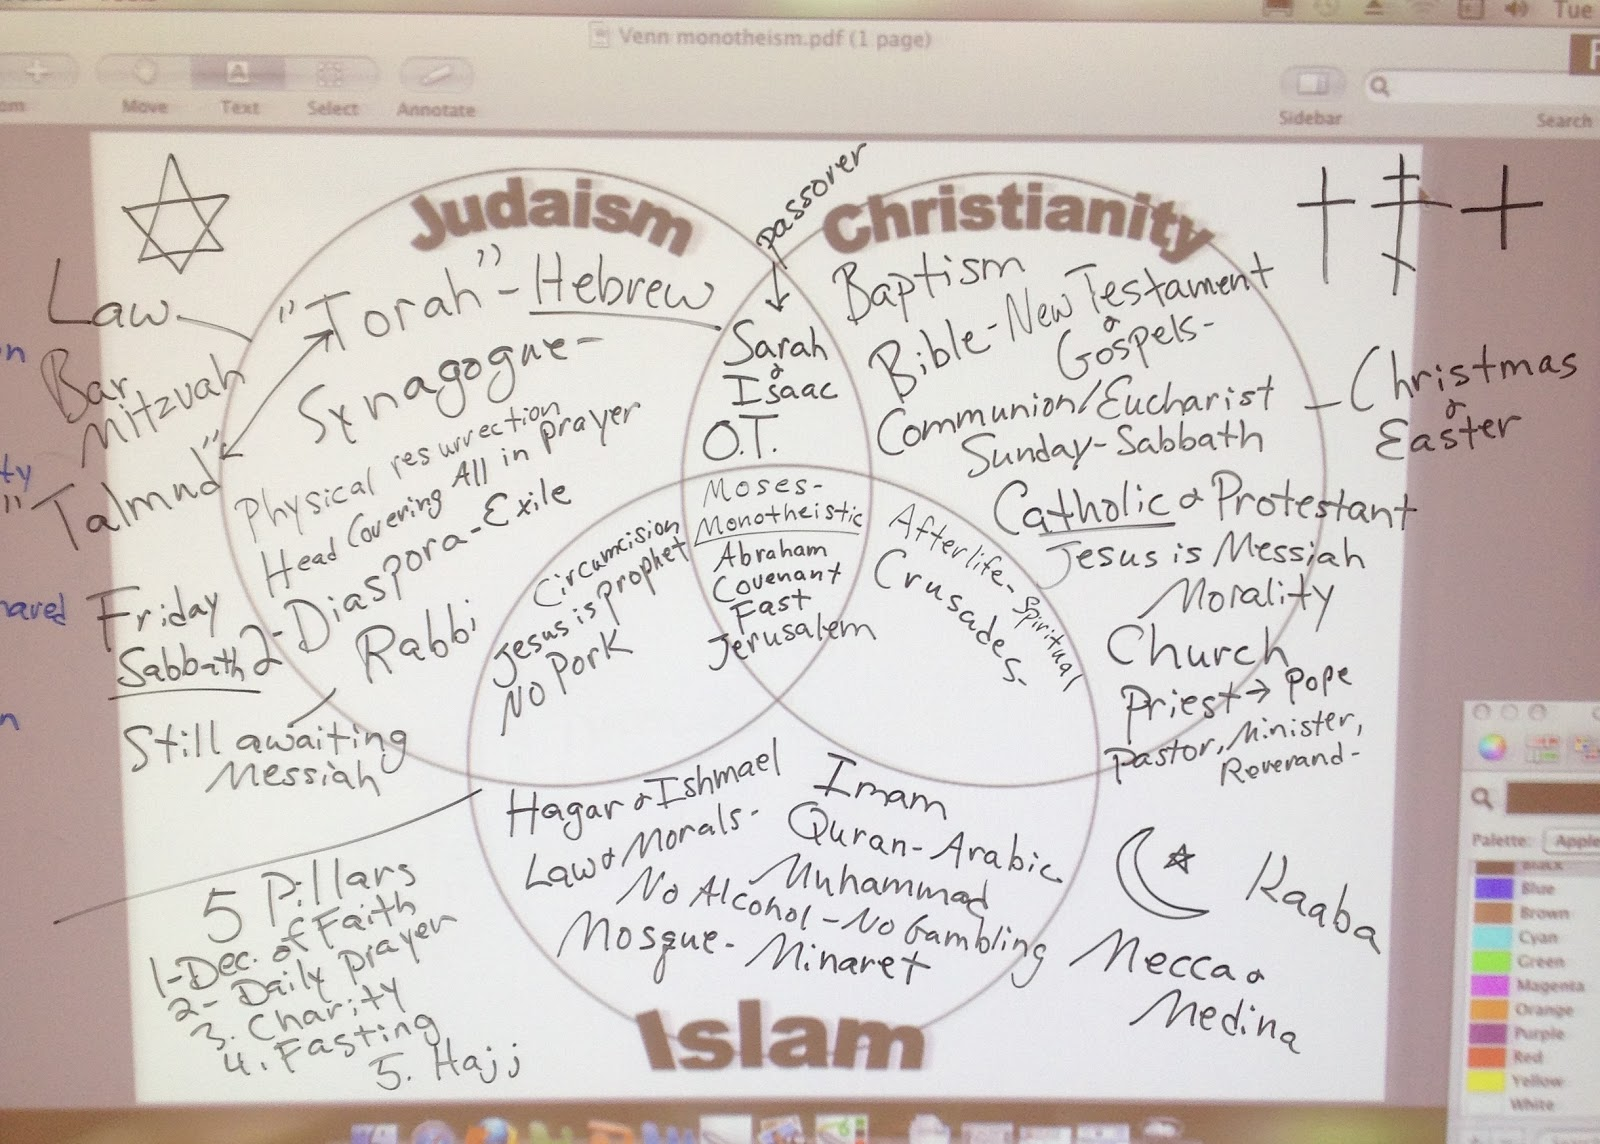 comparison of hinduism vs islam Use this chart to compare buddhism, hinduism, traditional judaism, and the gospel on issues like the way to truth, the meaning of death, and the afterlife.